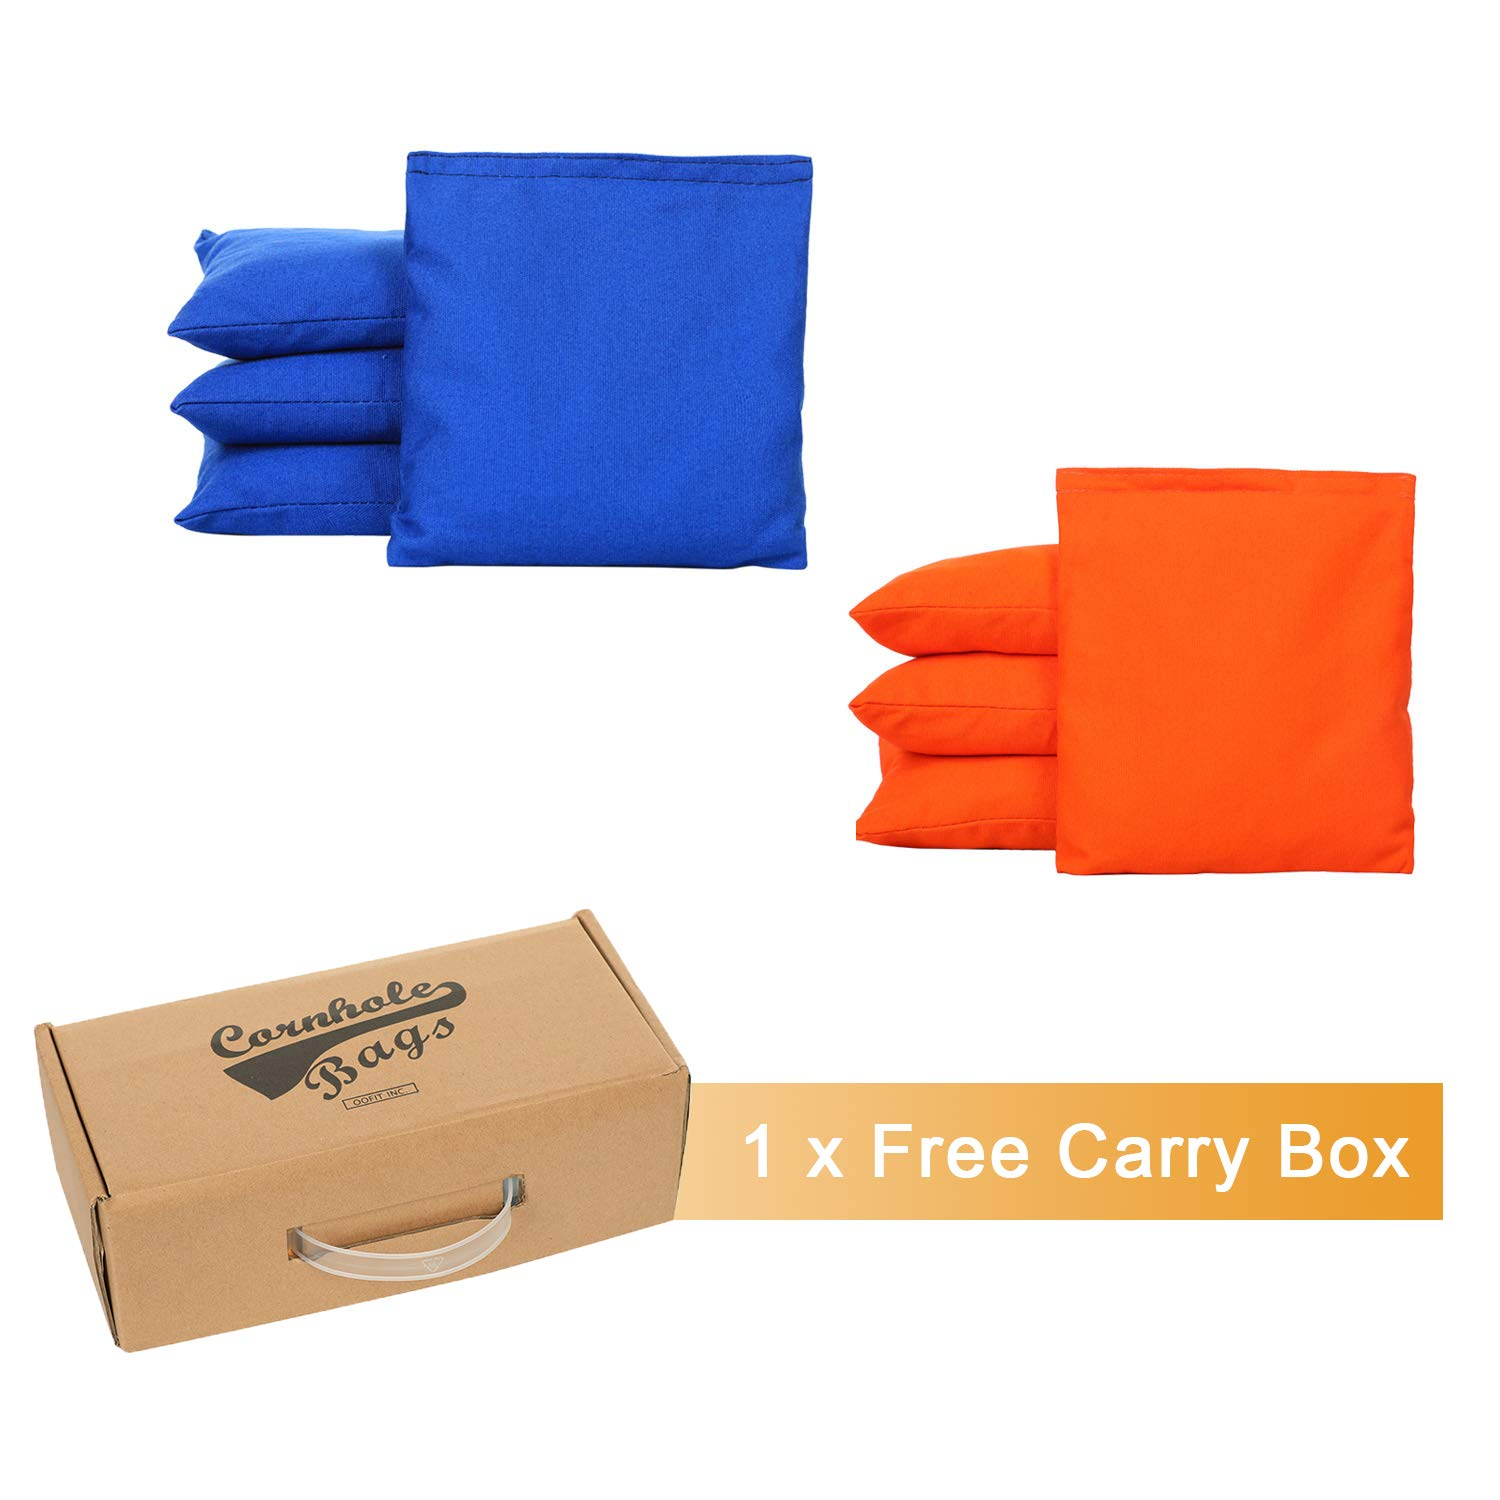 OOFIT Cornhole Bean Bags Set of 8 Weather Resistant for Tossing Corn Hole Game with Carrying Box (Navy Blue, Orange)